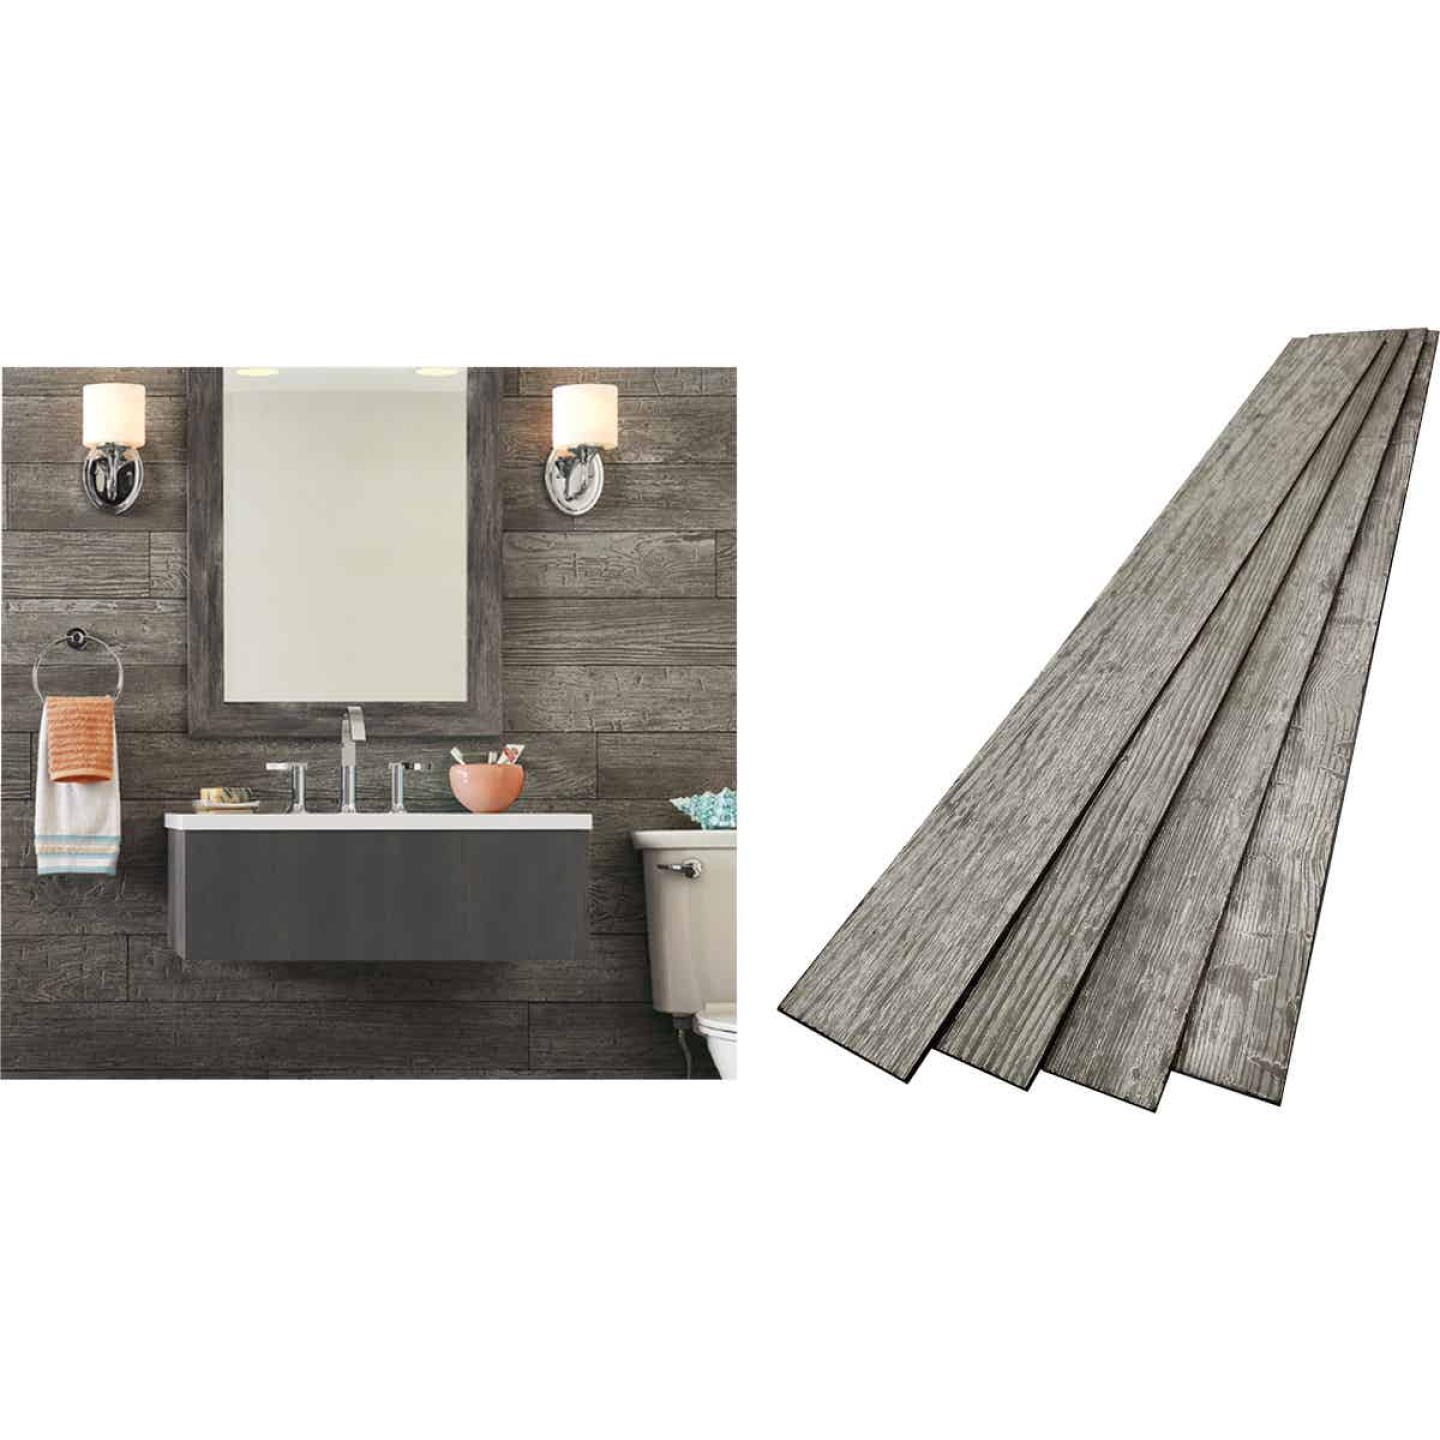 DPI 6 In. W. x 48 In. L. x 1/4 In. Thick Thunder Gray Rustic Wall Plank (12-Pack) Image 1